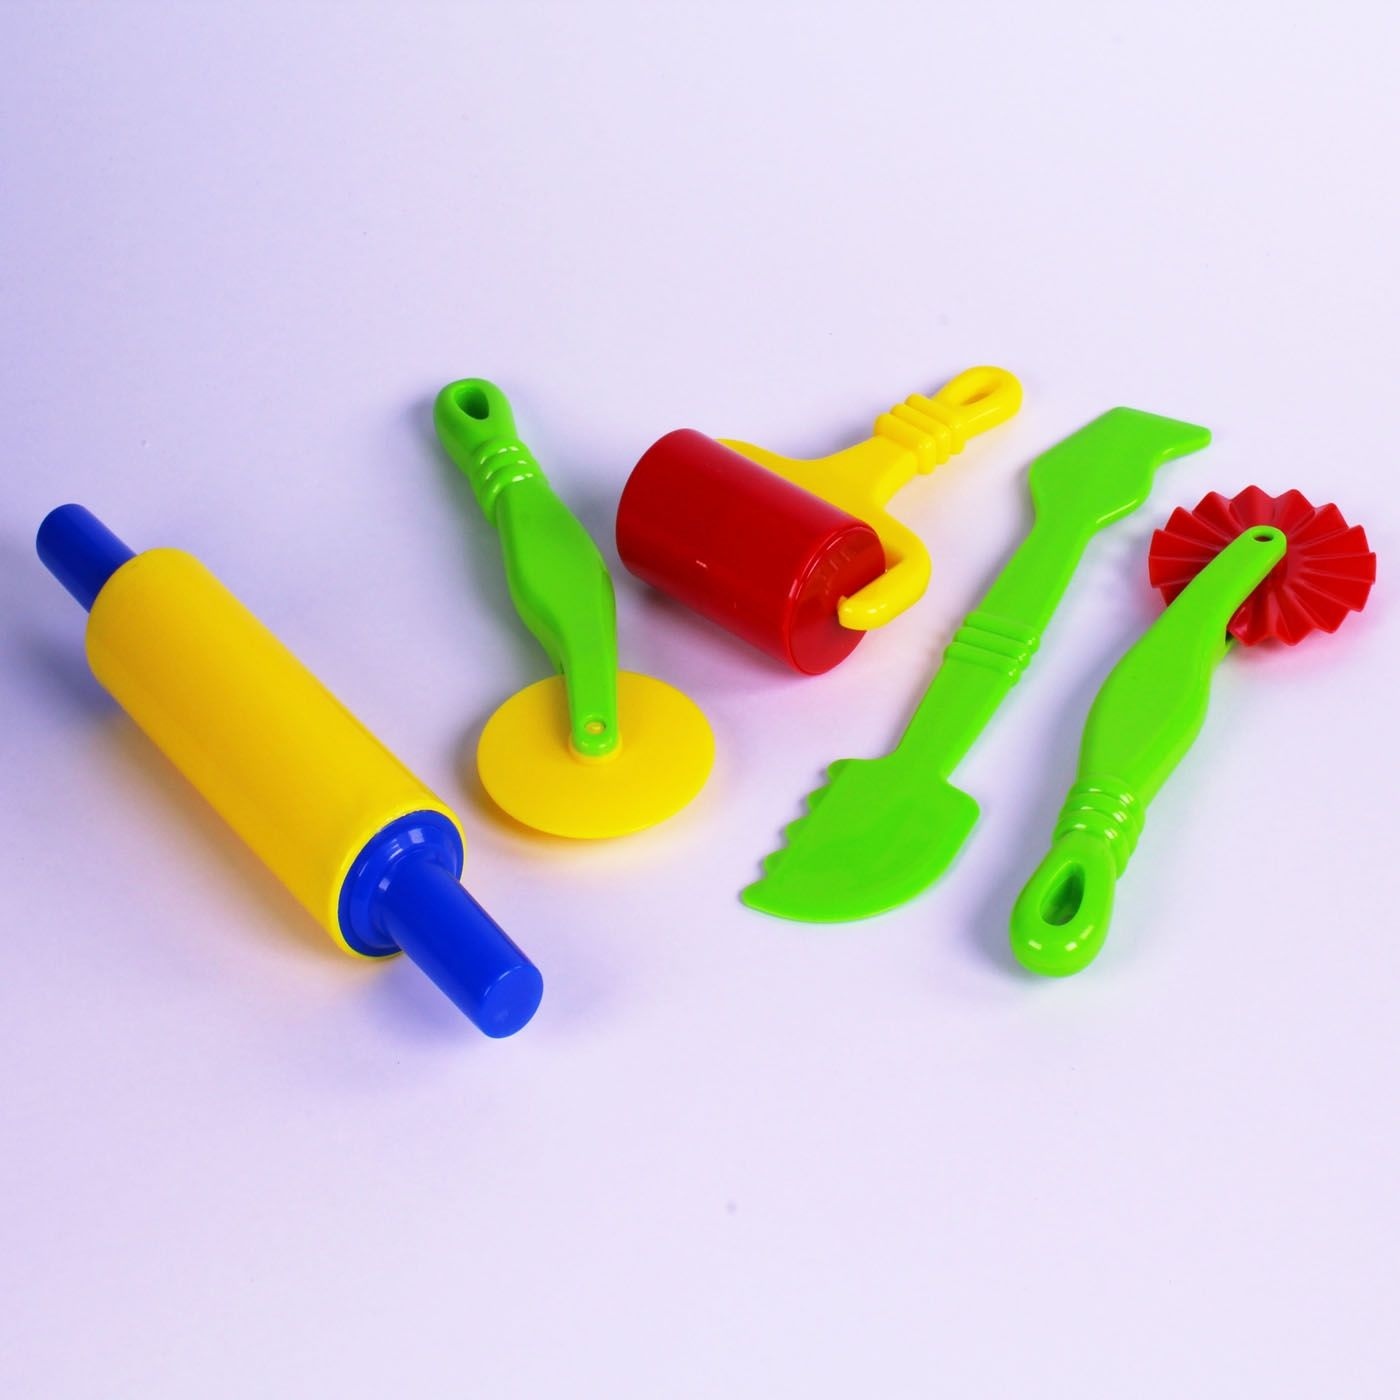 modelling tools with rolling pin